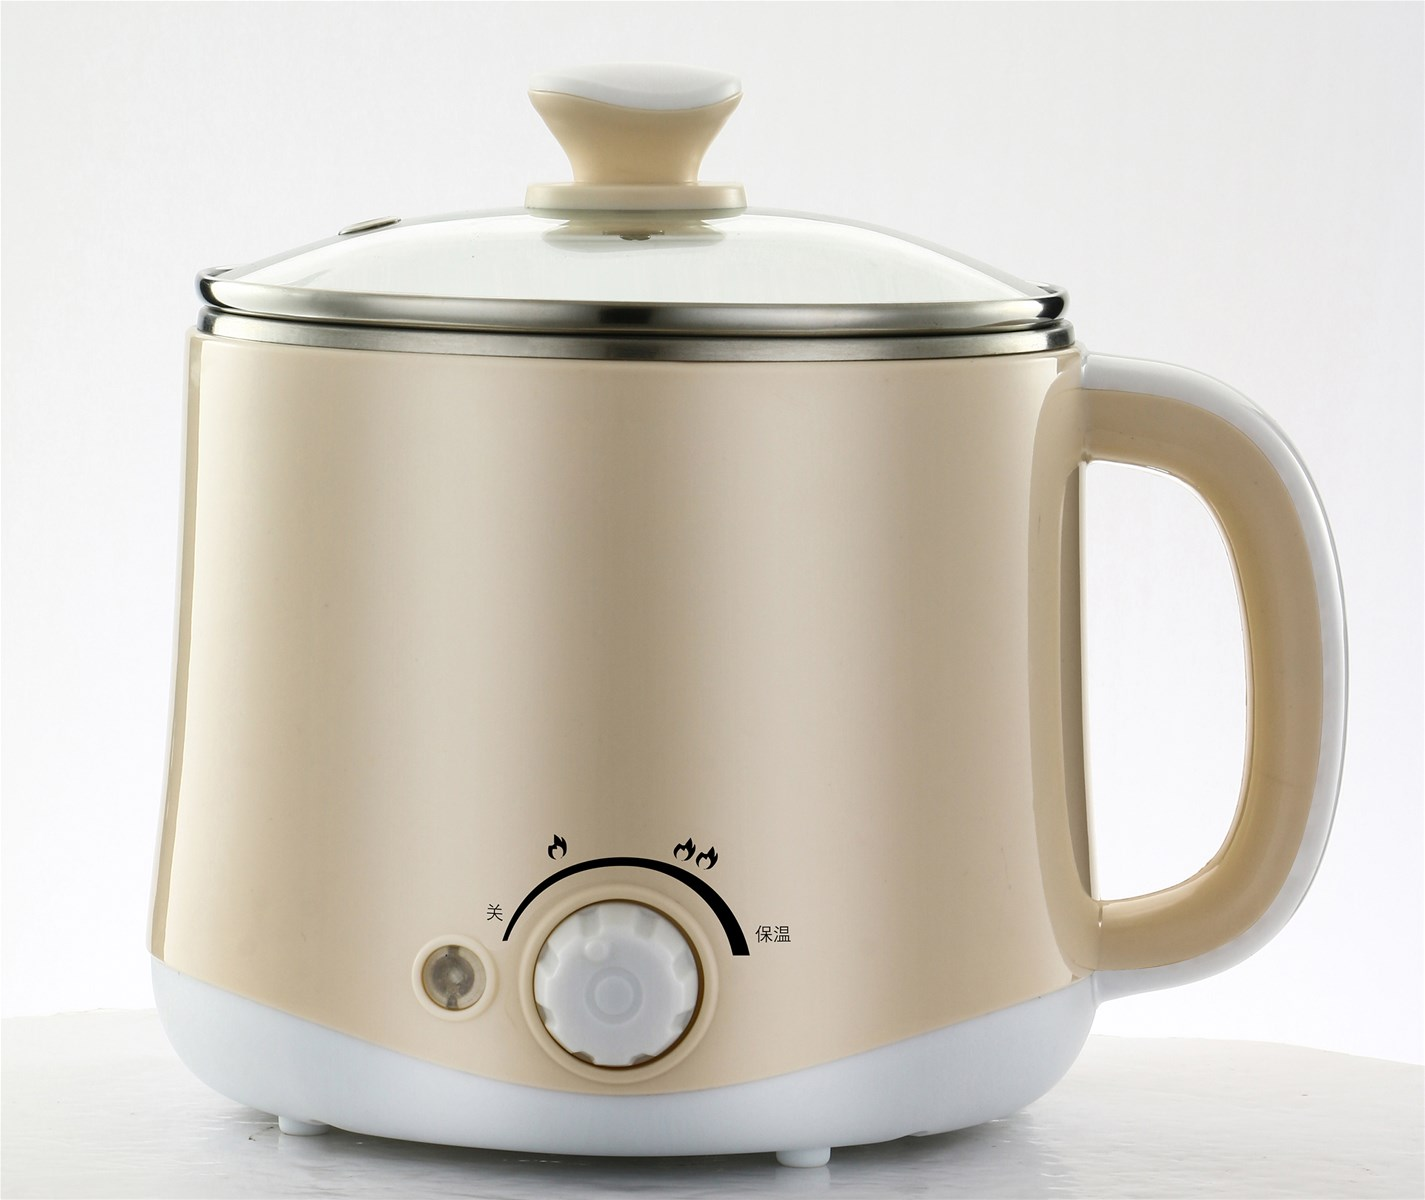 WD7616A Double convex jump temperature control Noodle Pot with full circle heating function